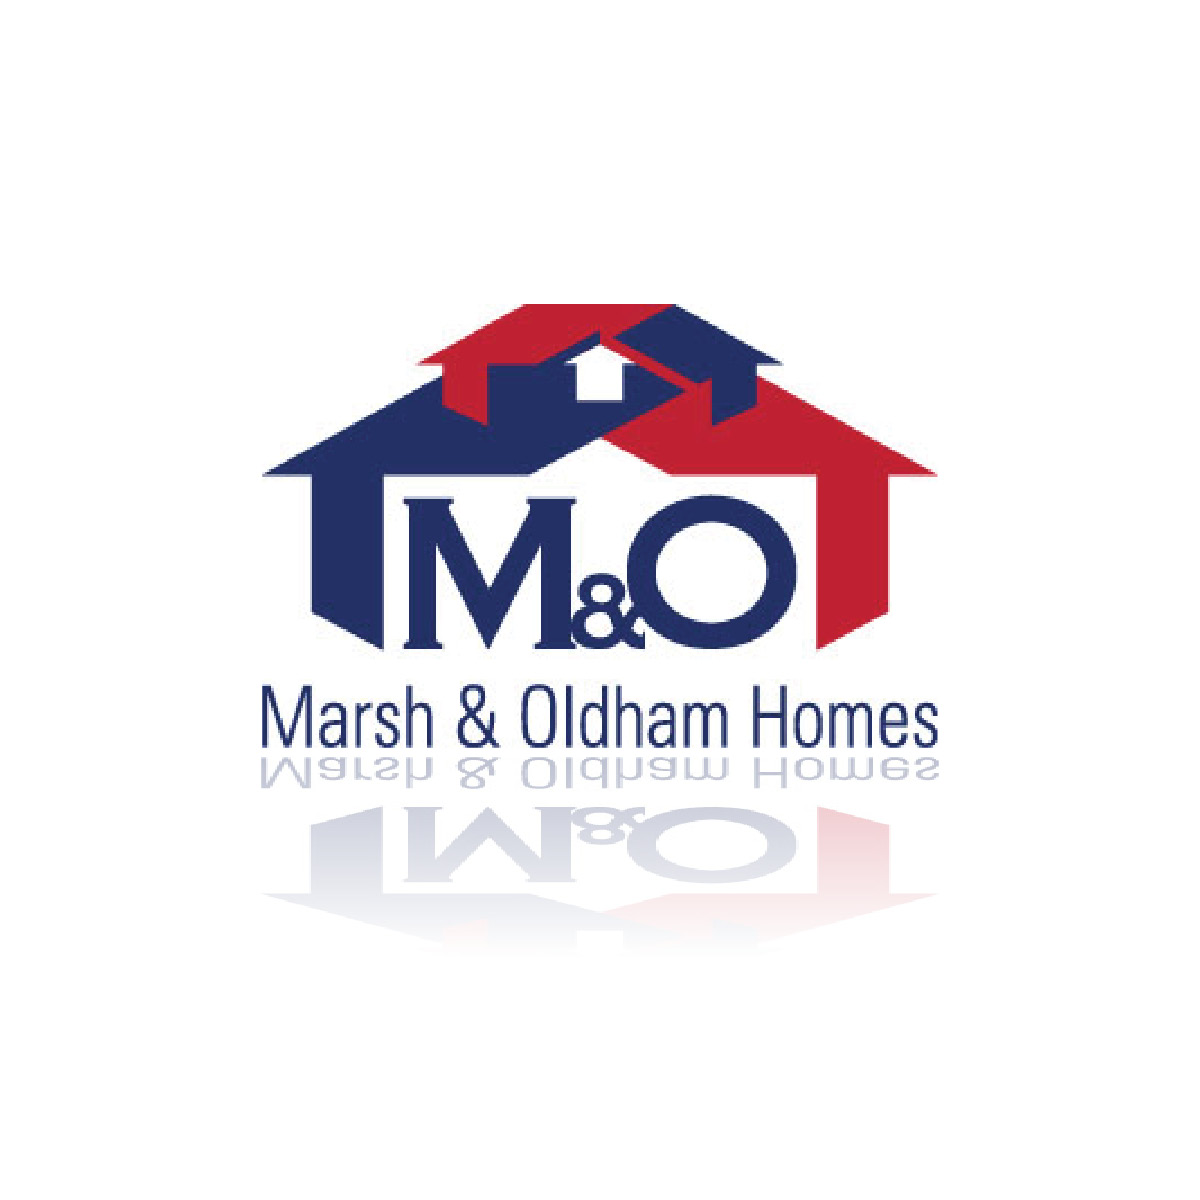 Logo Design by ISaac Law - Entry No. 121 in the Logo Design Contest Artistic Logo Design for Marsh & Oldham Homes.